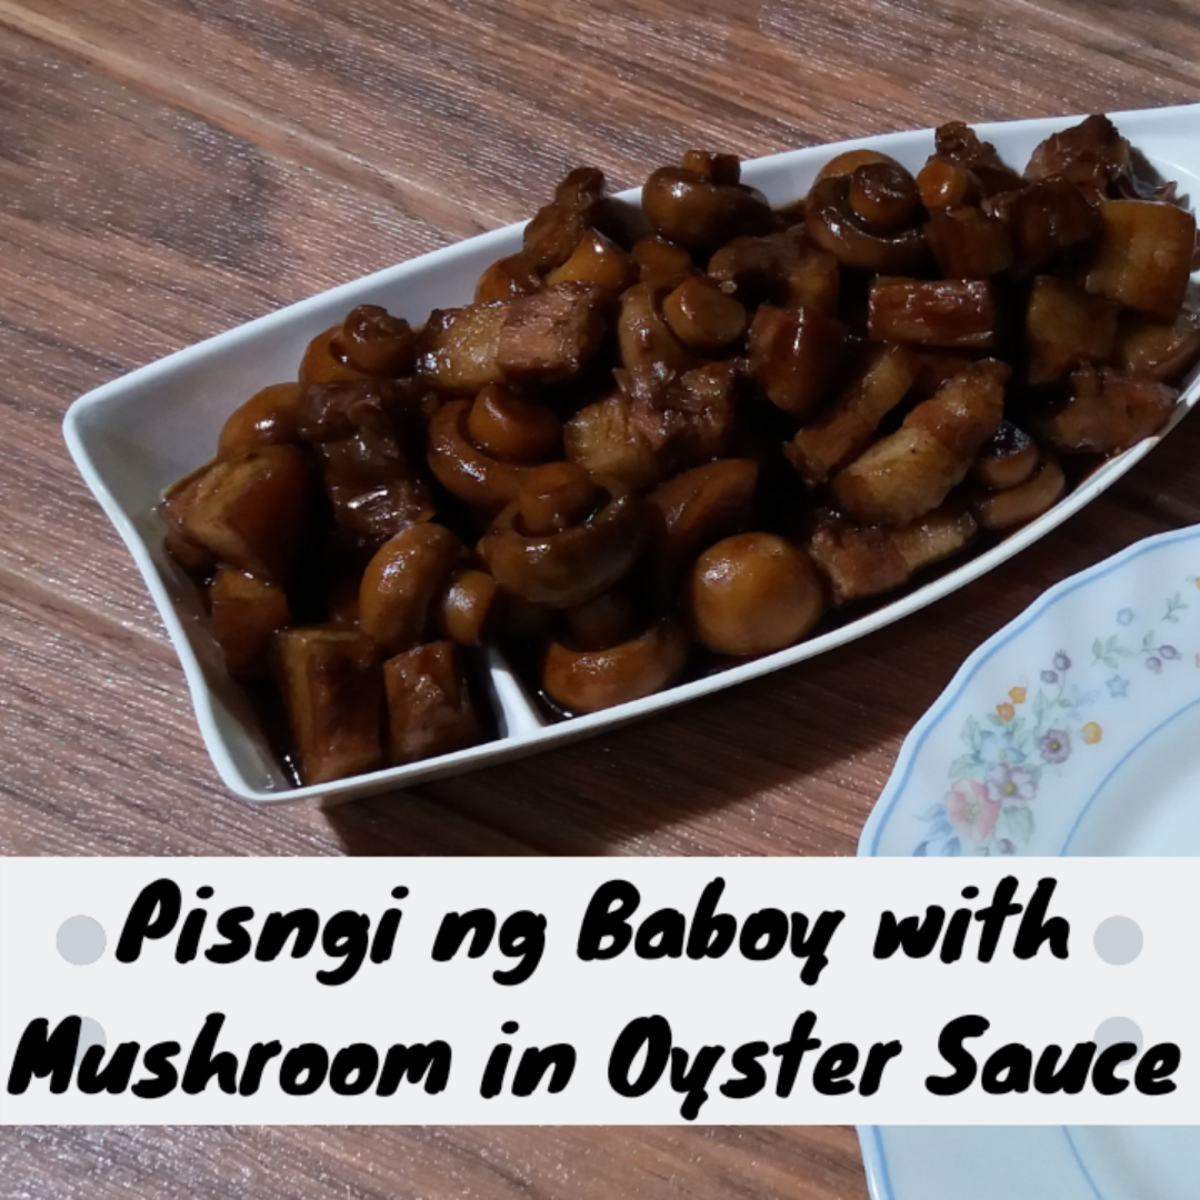 Learn how to prepare pisngi ng baboy with mushrooms in oyster sauce